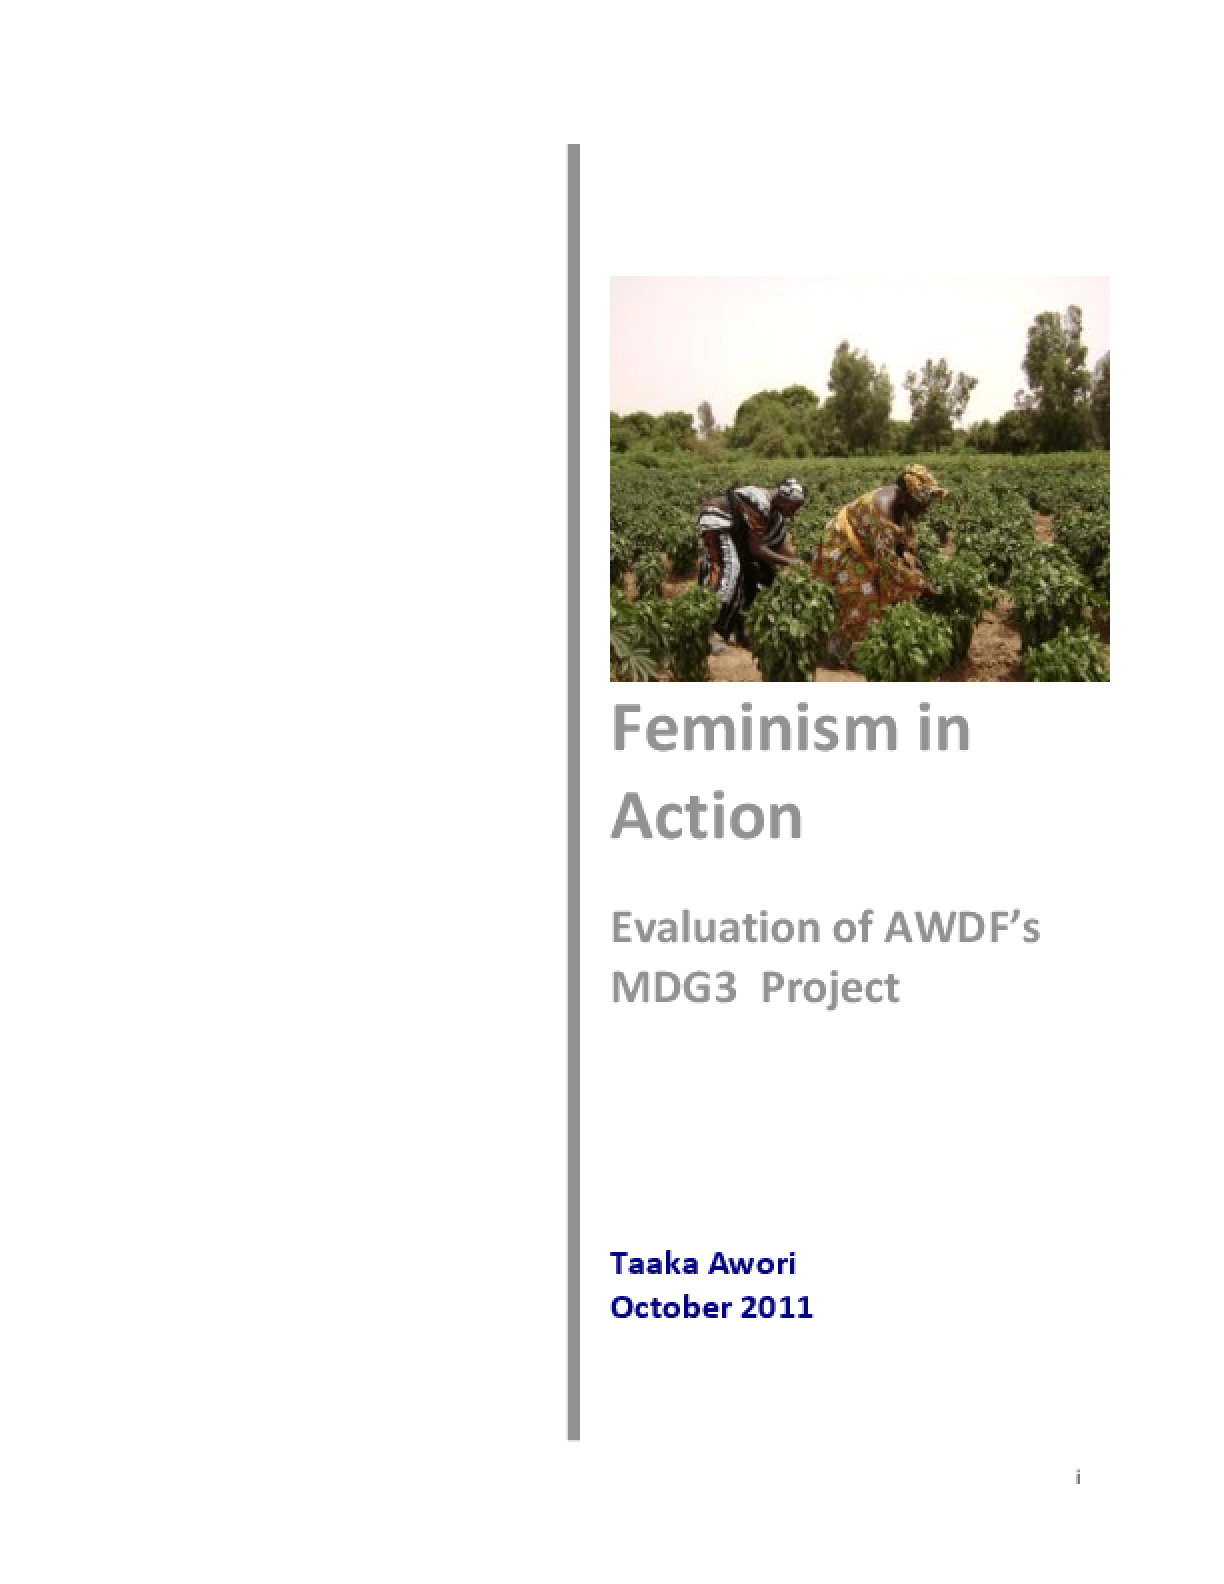 Feminism in Action: Evaluation of AWDF's MDG3 Project